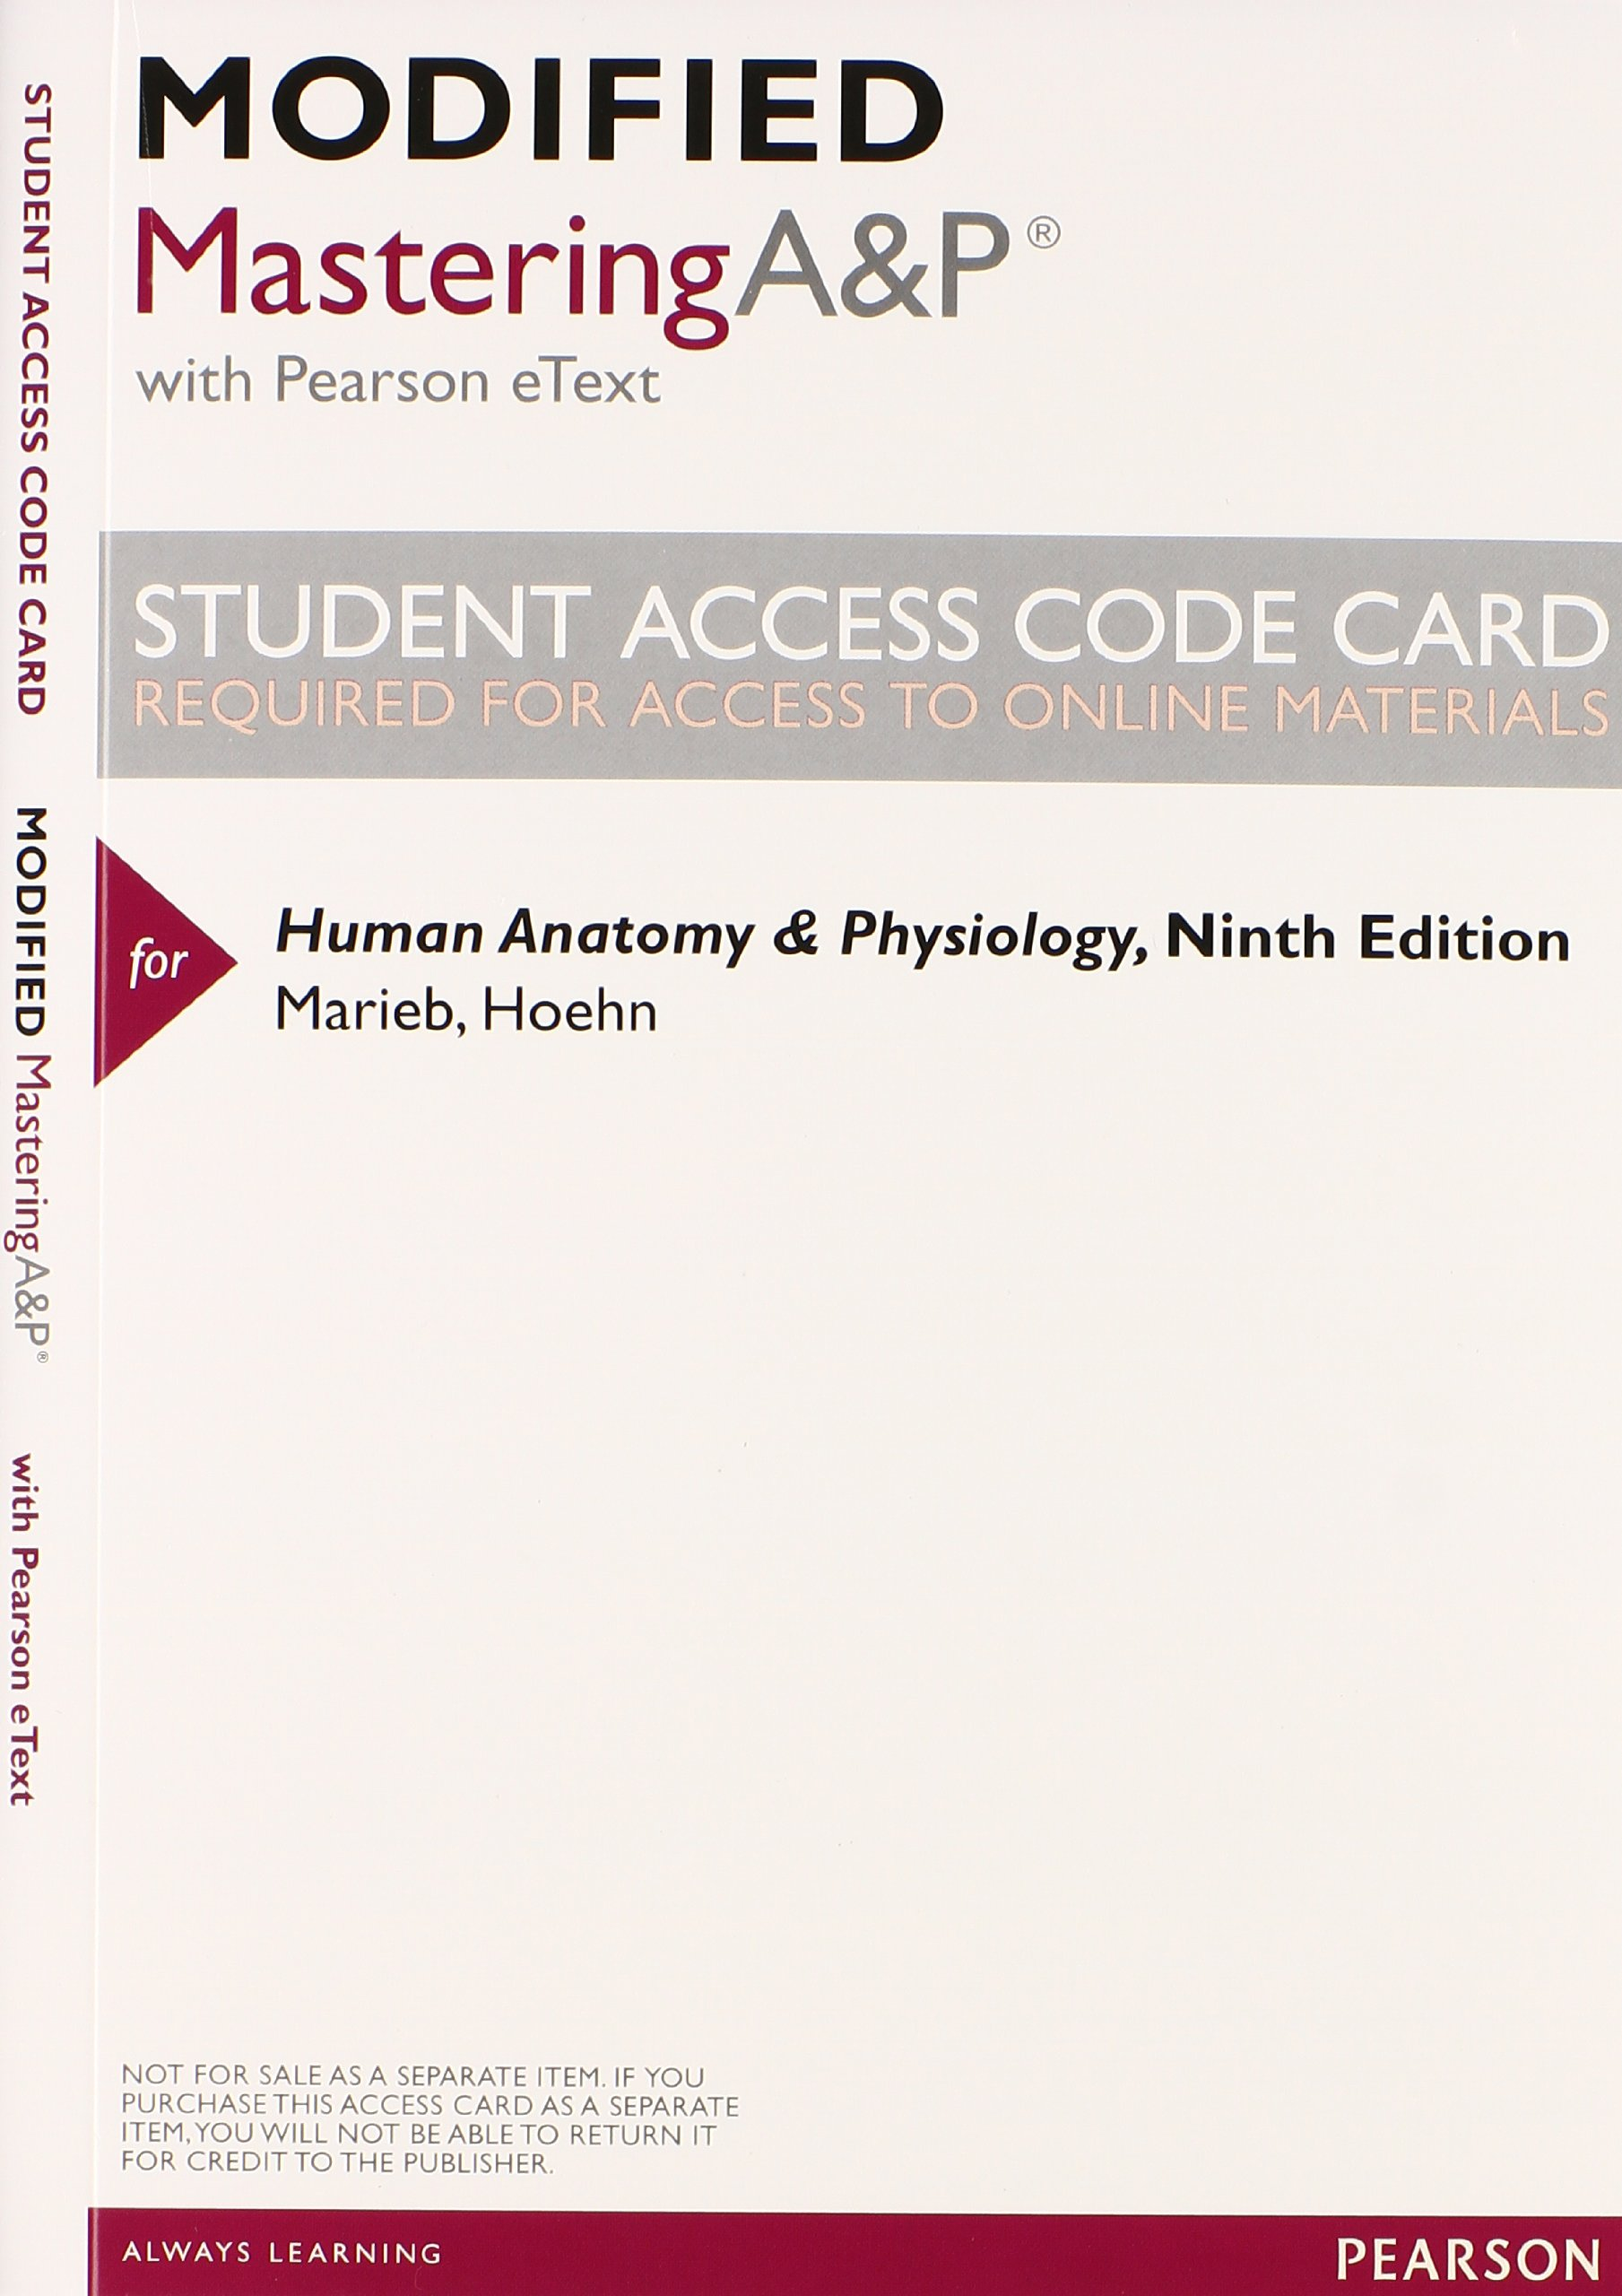 Human Anatomy & Physiology with Modified Mastering A&P with Pearson ...